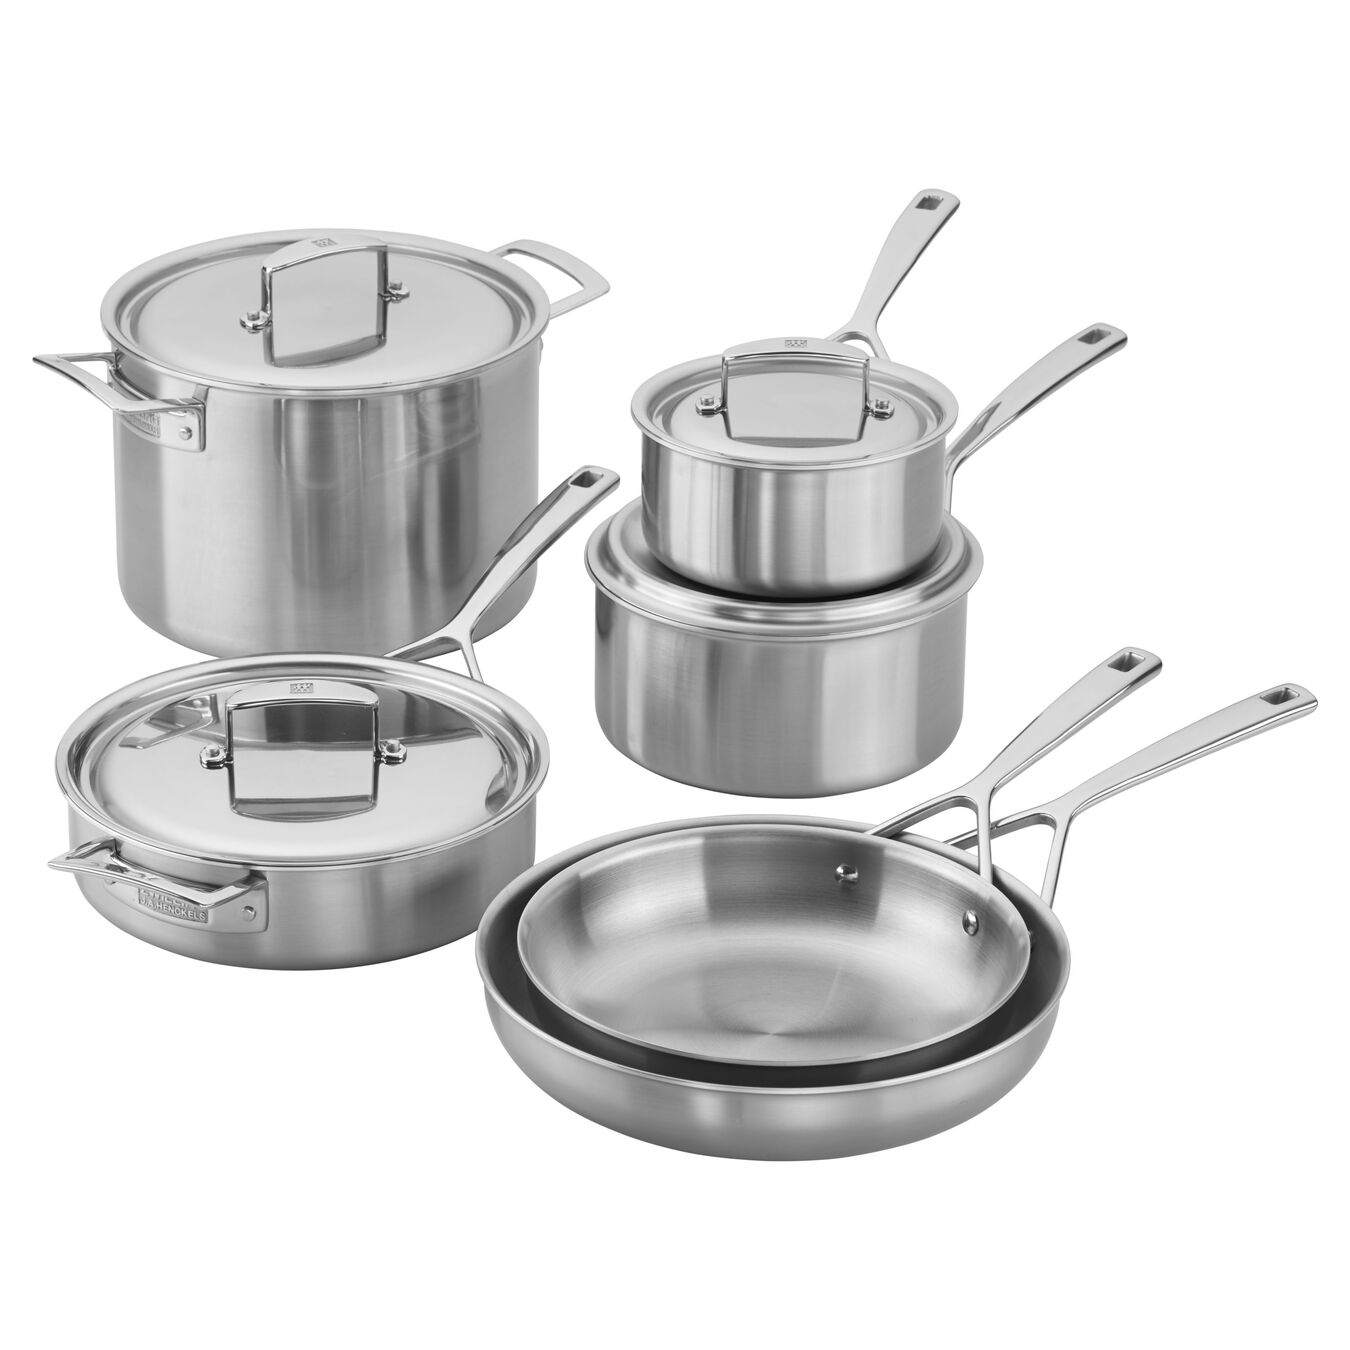 Stainless Steel 10 Piece Cookware Set,,large 1